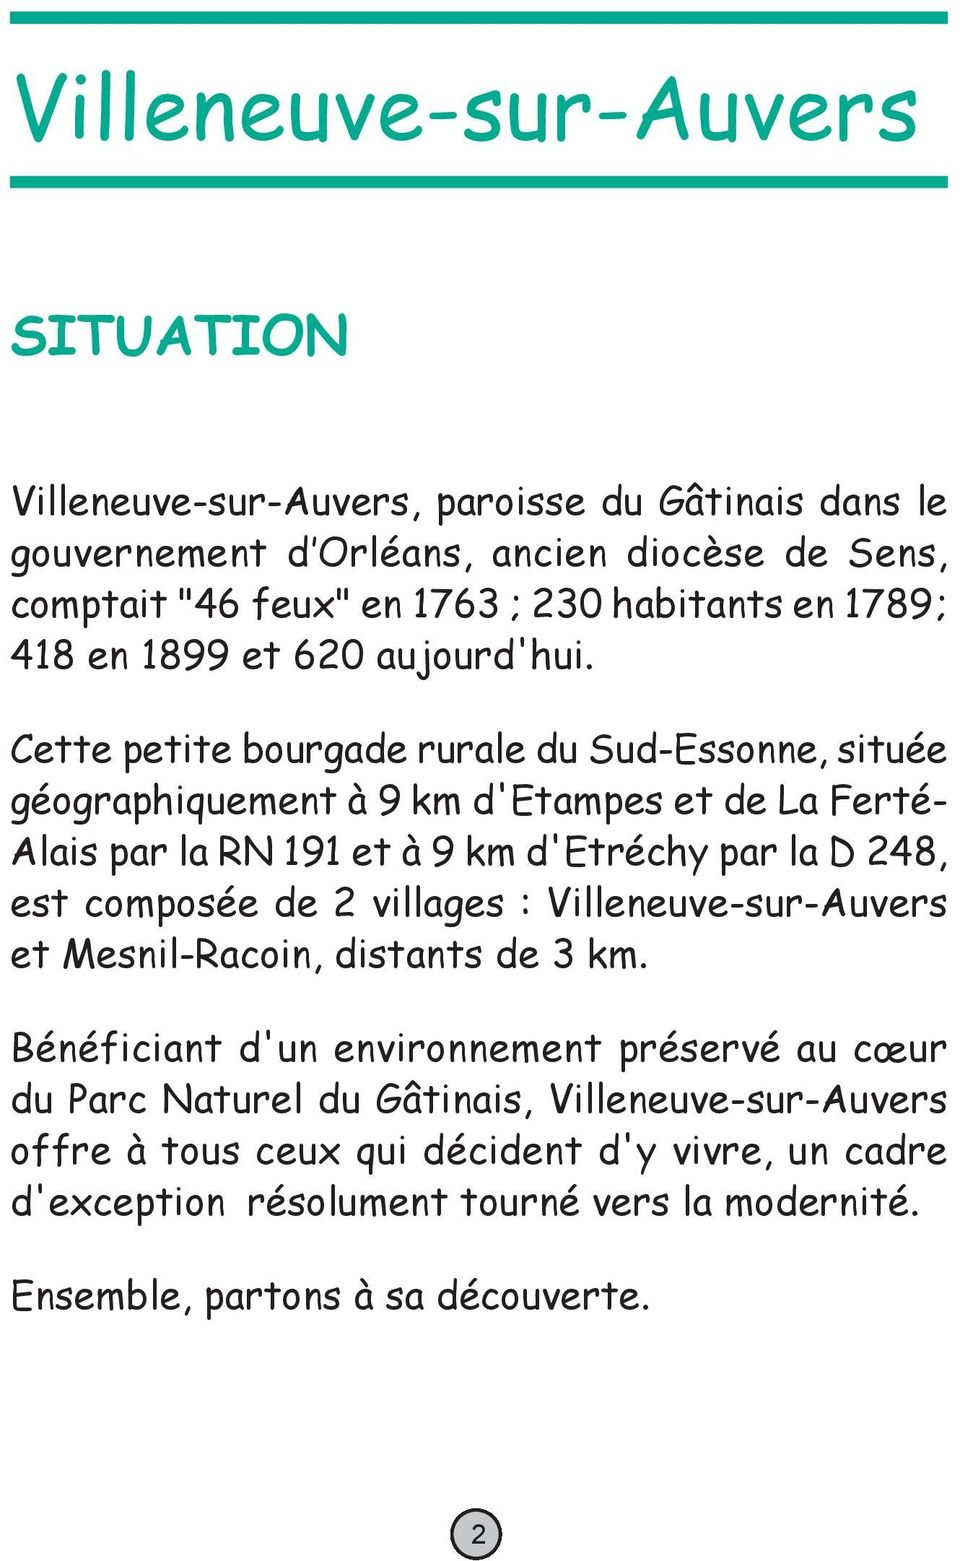 Guide Pratique De Villeneuve Sur Auvers Pdf Free Download